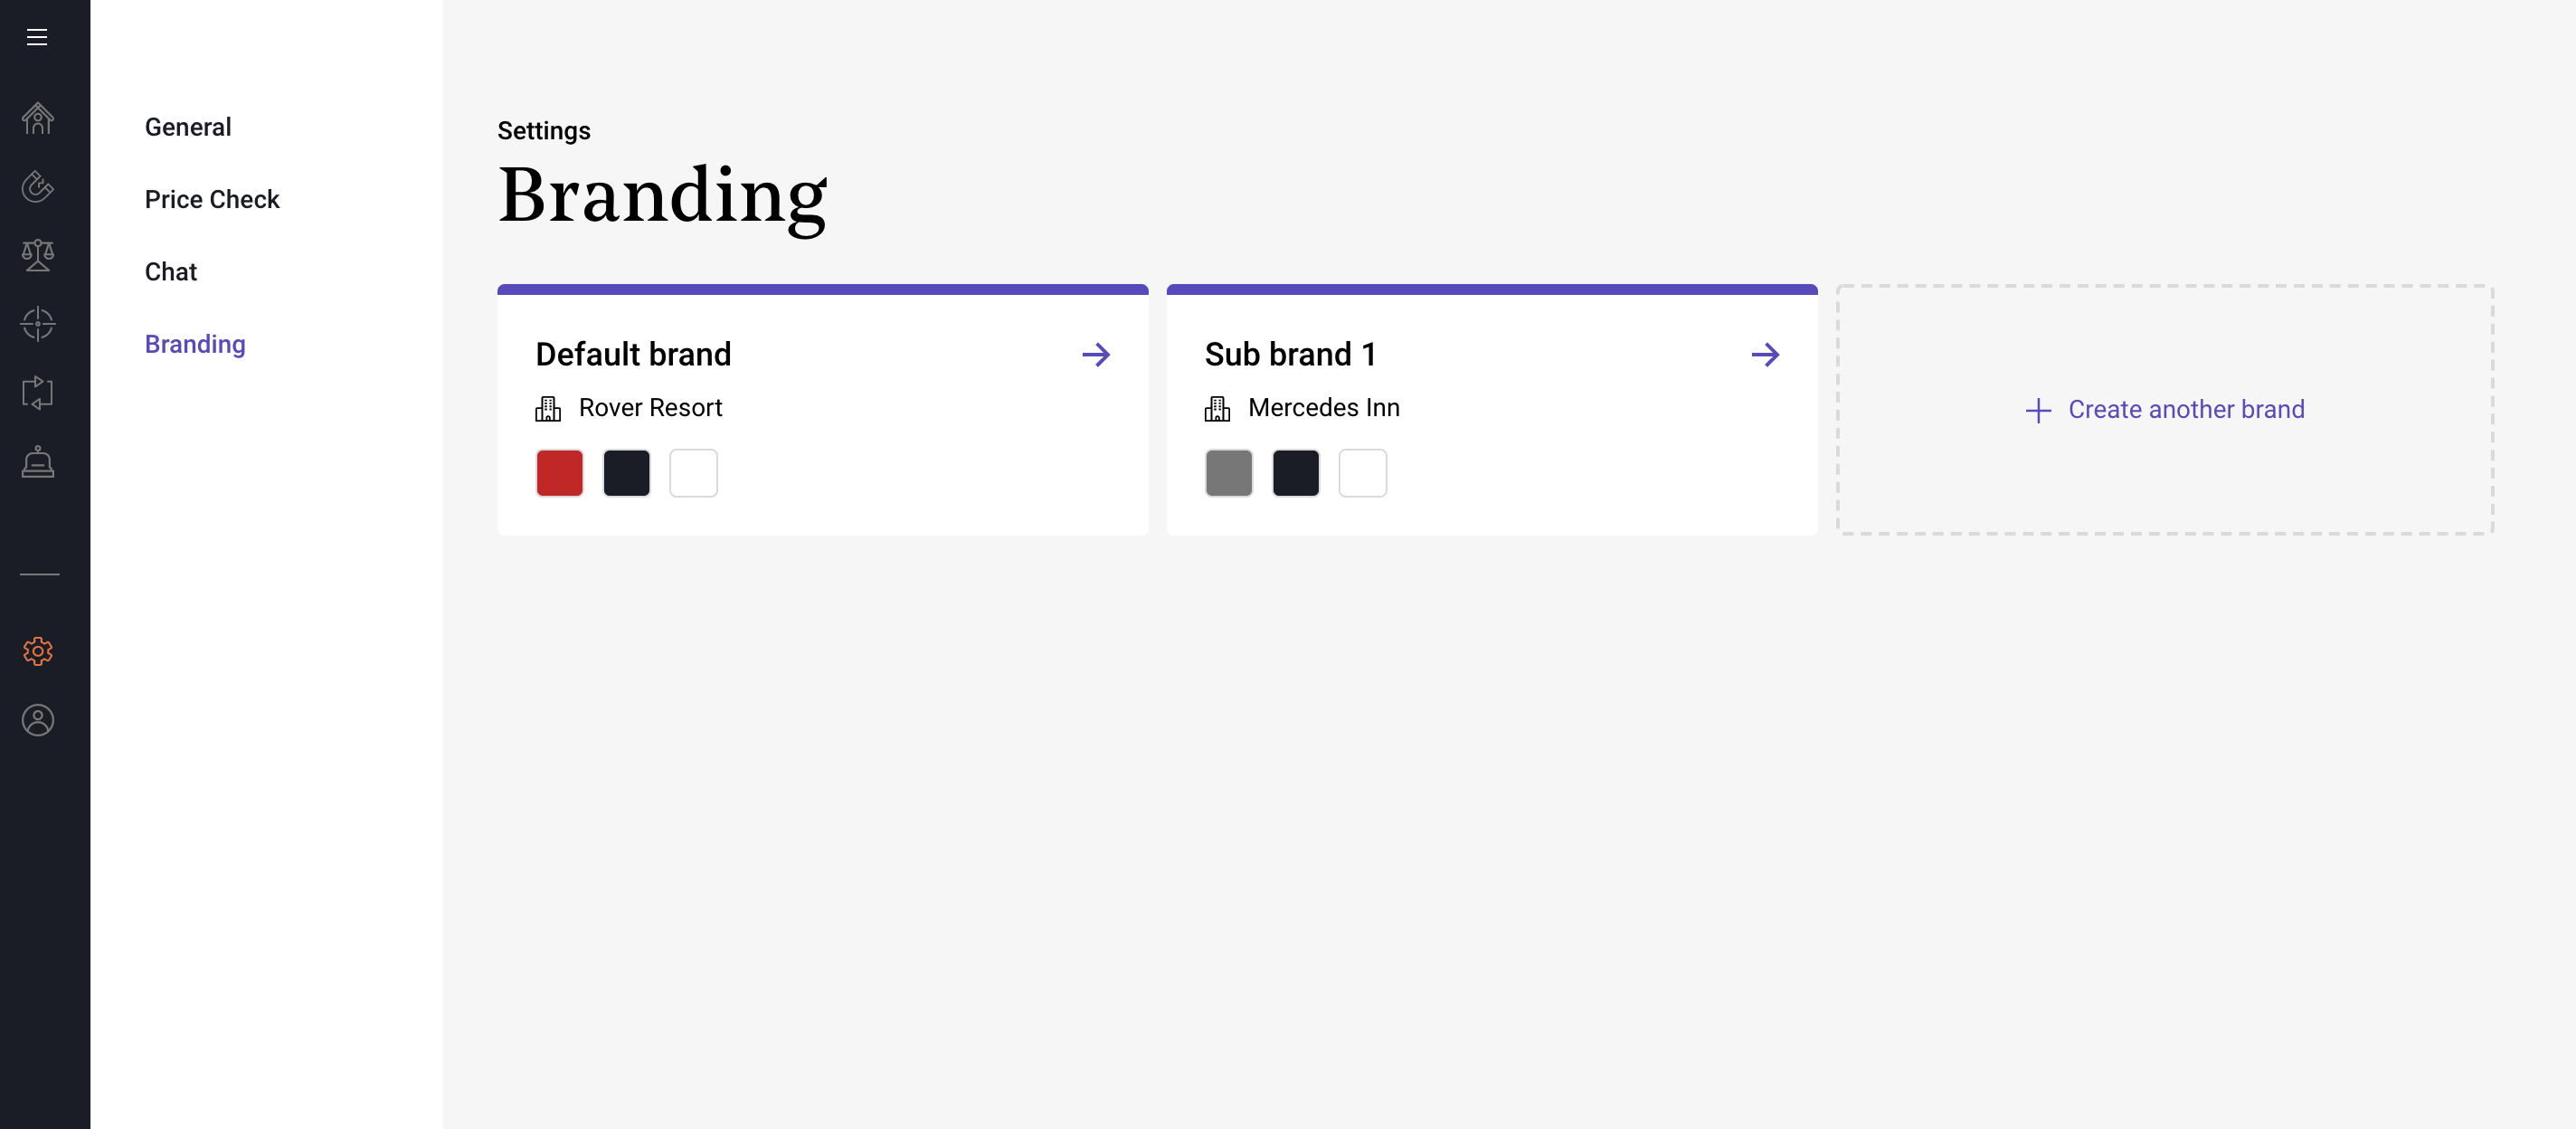 A screenshot of the Triptease Platform 'Branding' page within the 'Settings' section, showing the option to upload both a 'Default brand' and multiple 'Sub brands' for Targeted Messages